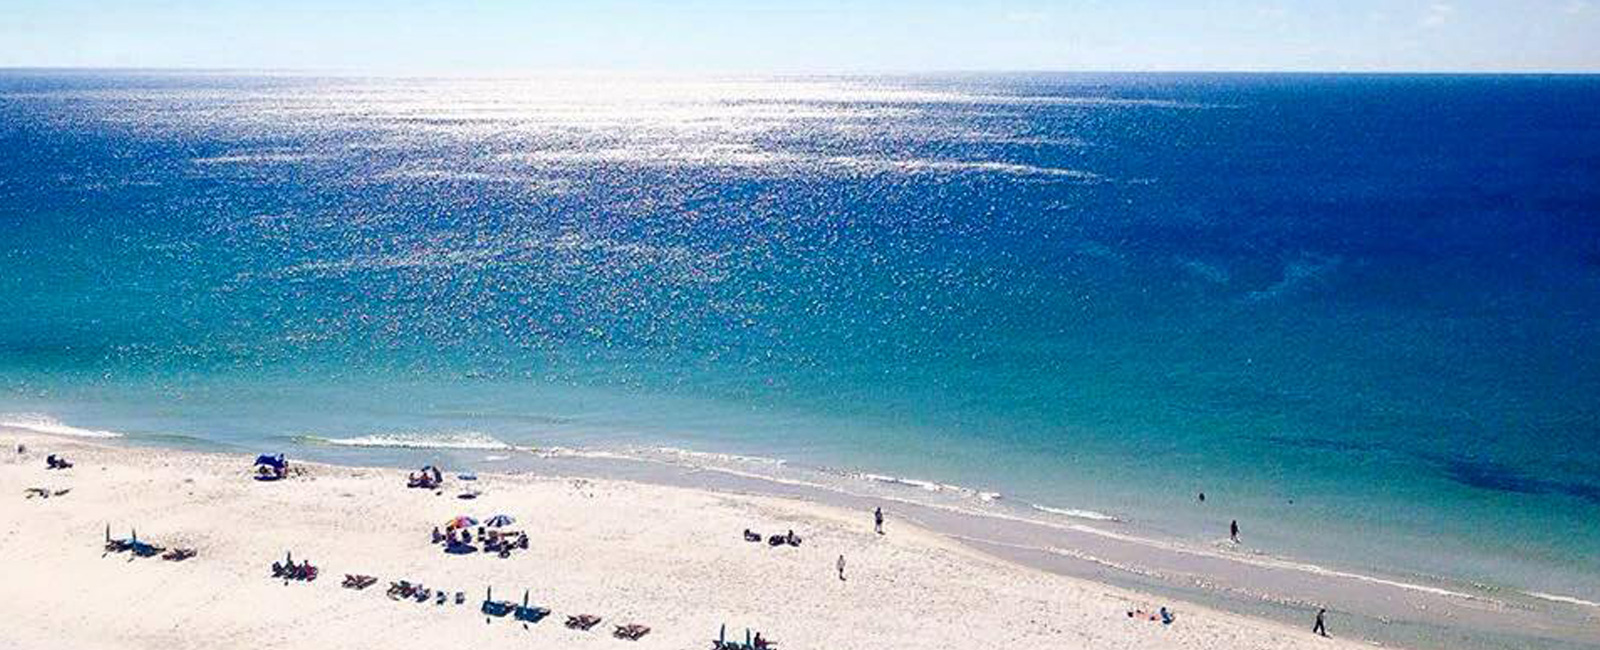 Alabama Beaches Images Premier Realty Management For Orange Beach Gulf Ss Al Jpg